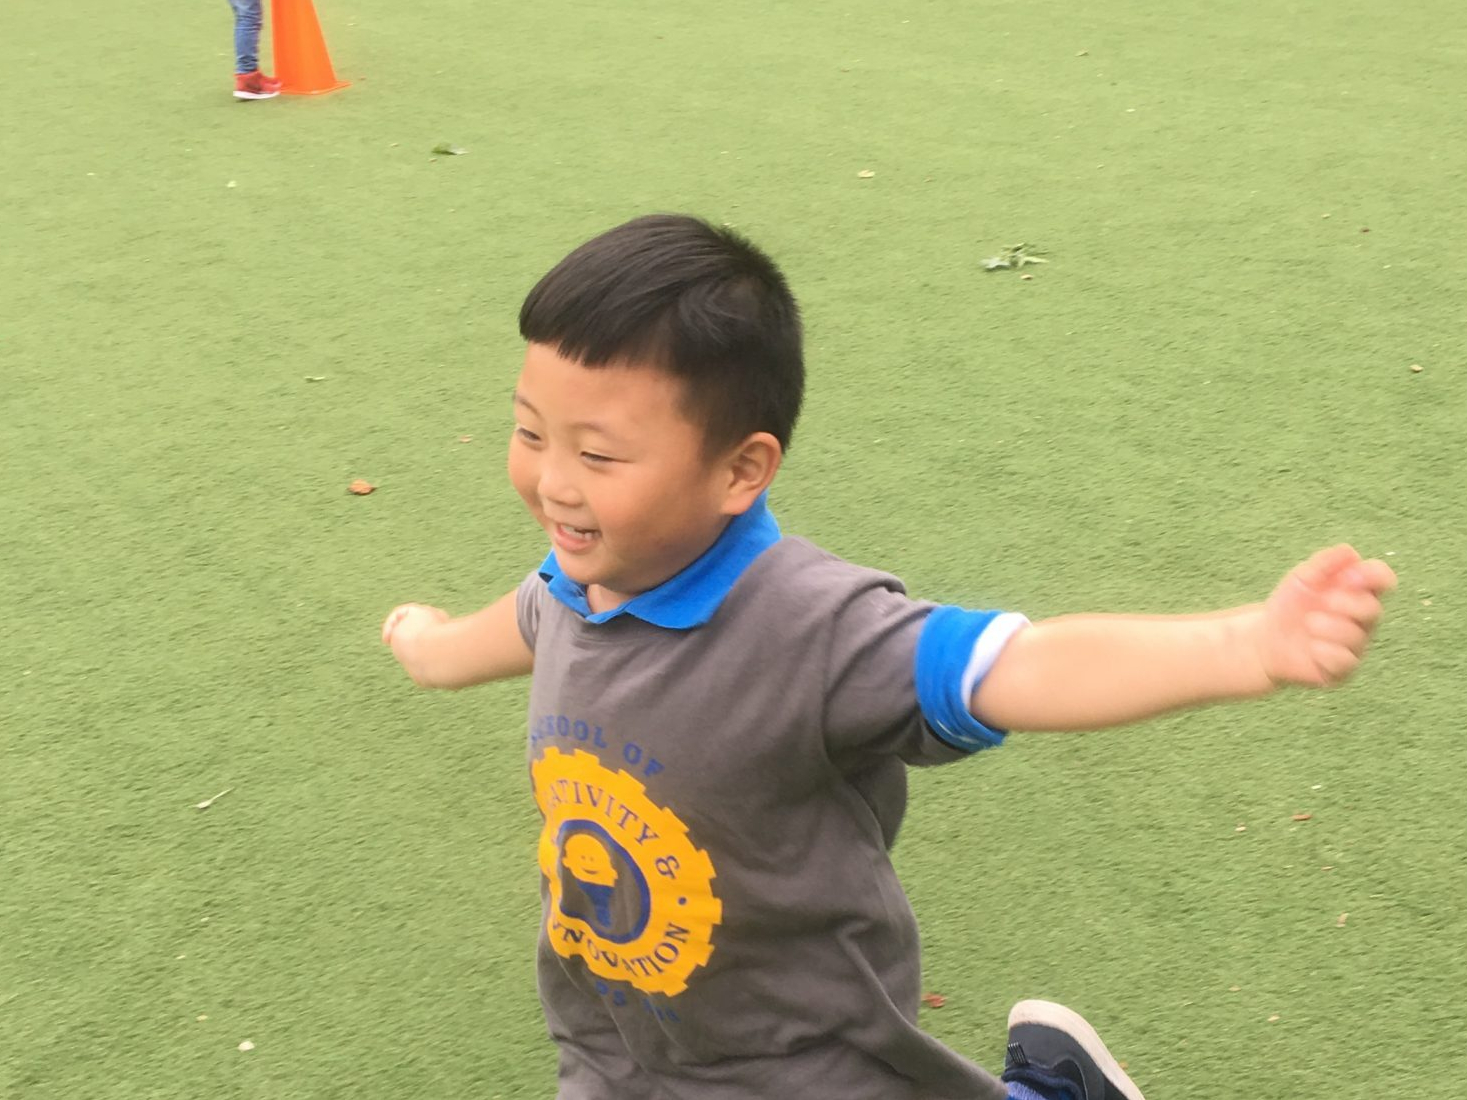 student crosses the finish line at field day